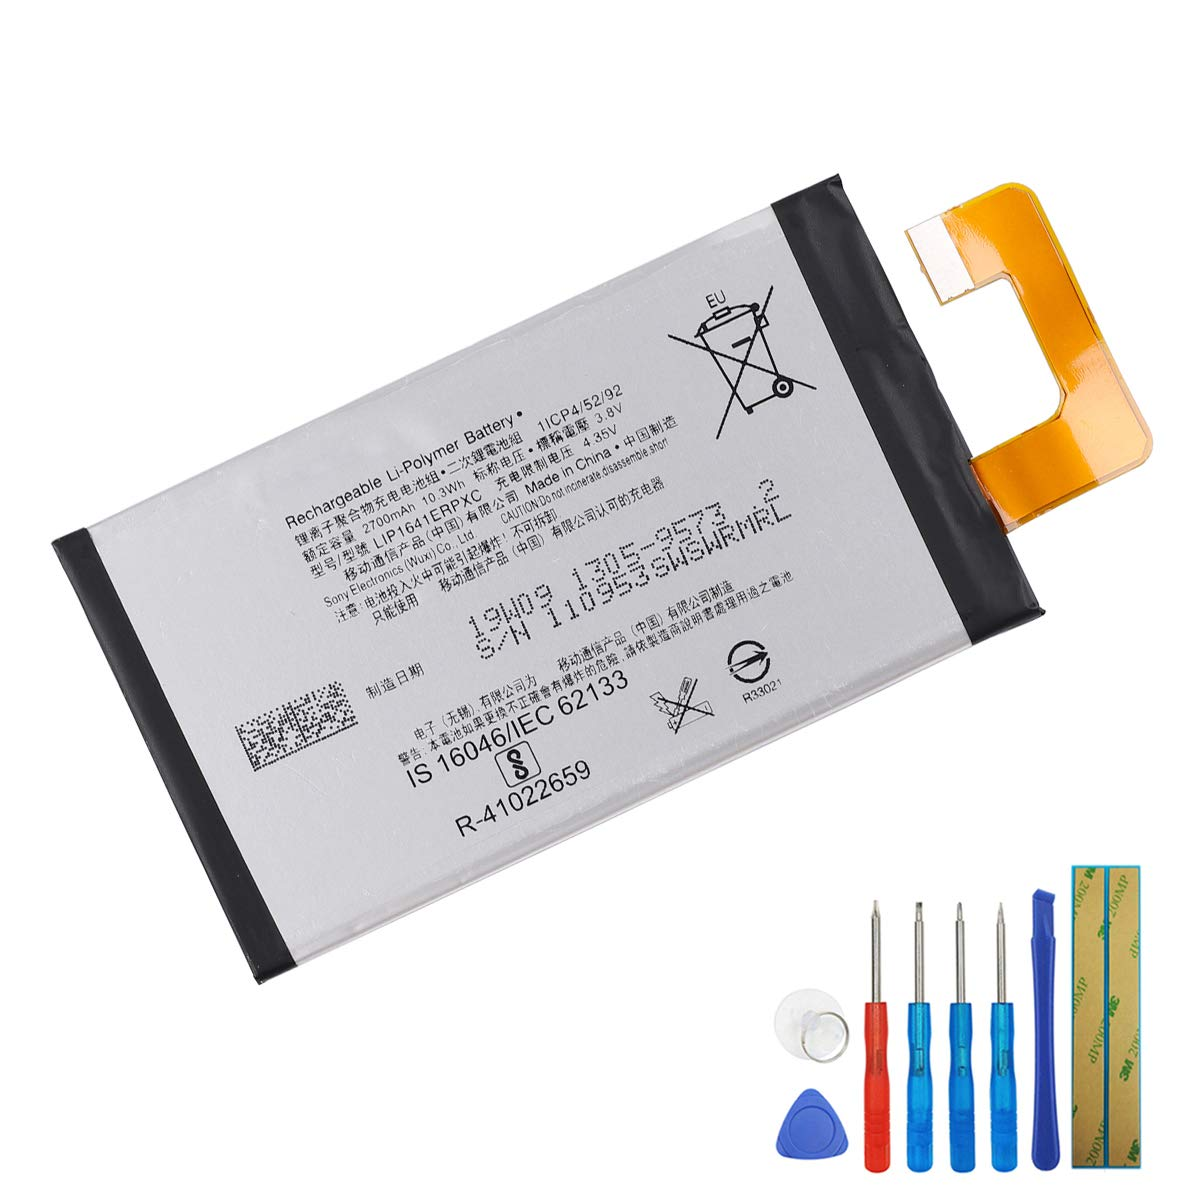 New Li-Polymer Replacement Battery LIP1641ERPXC Compatible with Sony Xperia XA1 Ultra G3212 G3221 with Tool